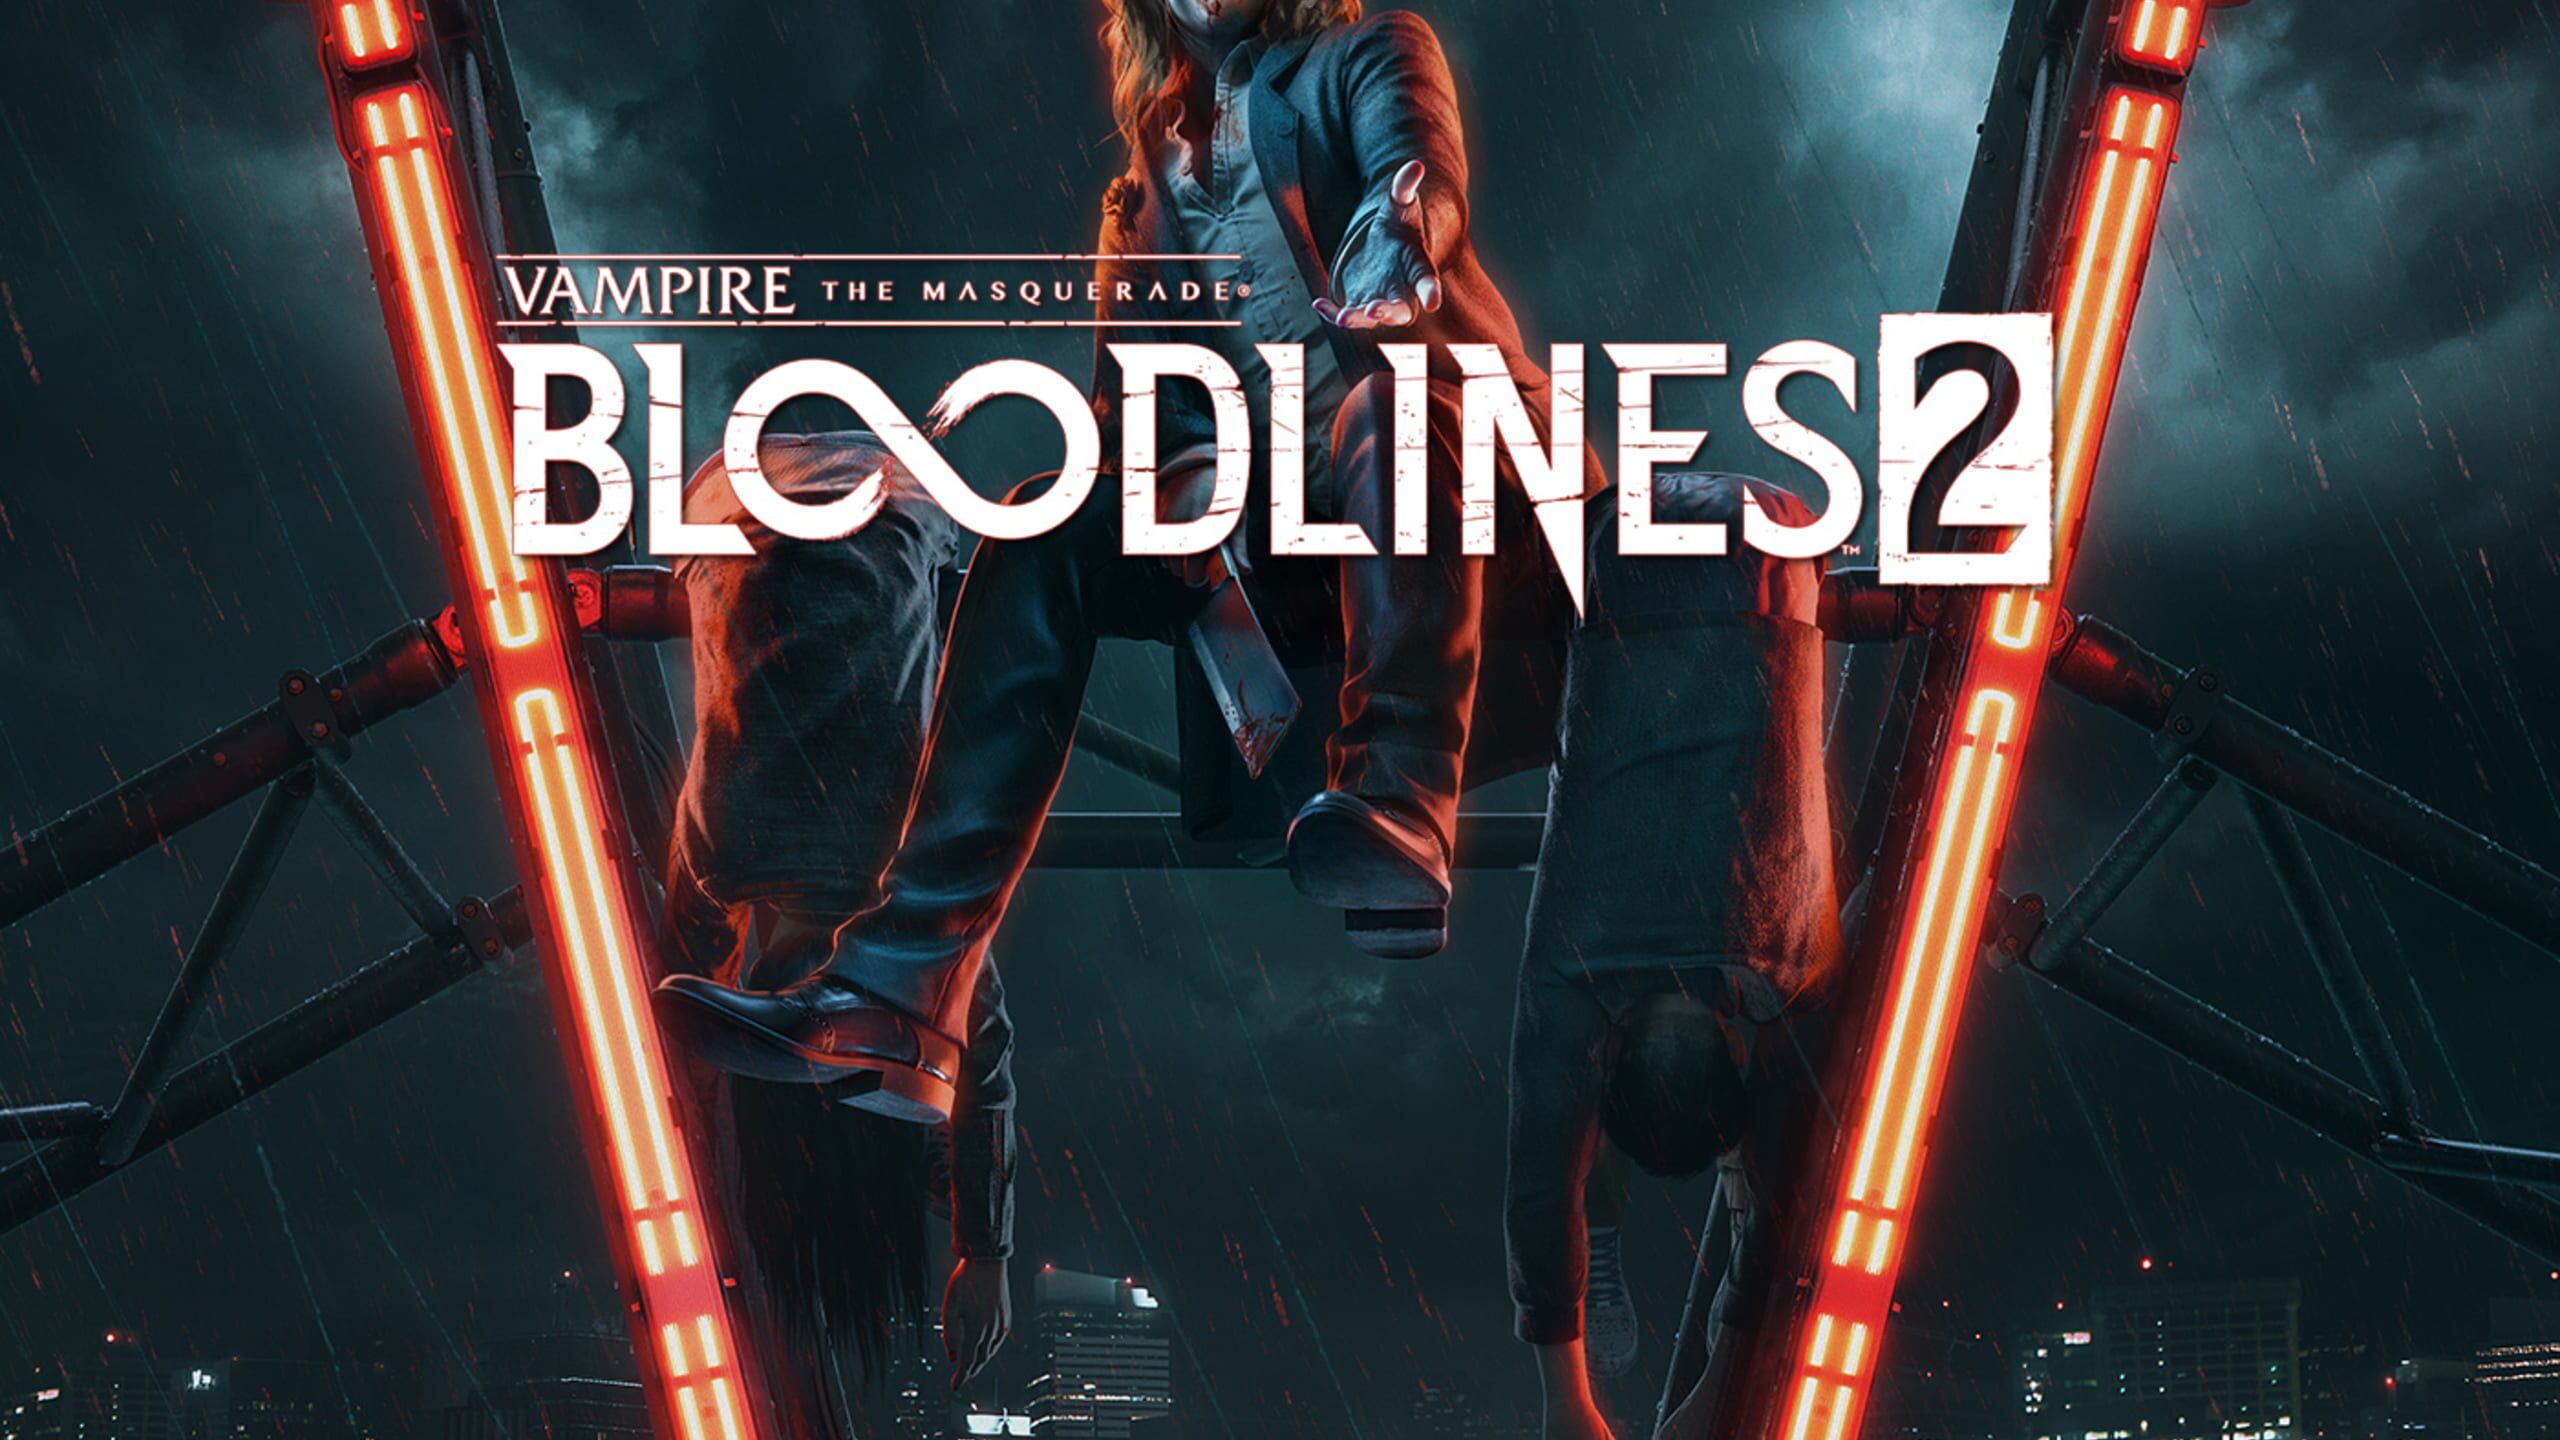 game cover art for Vampire: The Masquerade - Bloodlines 2